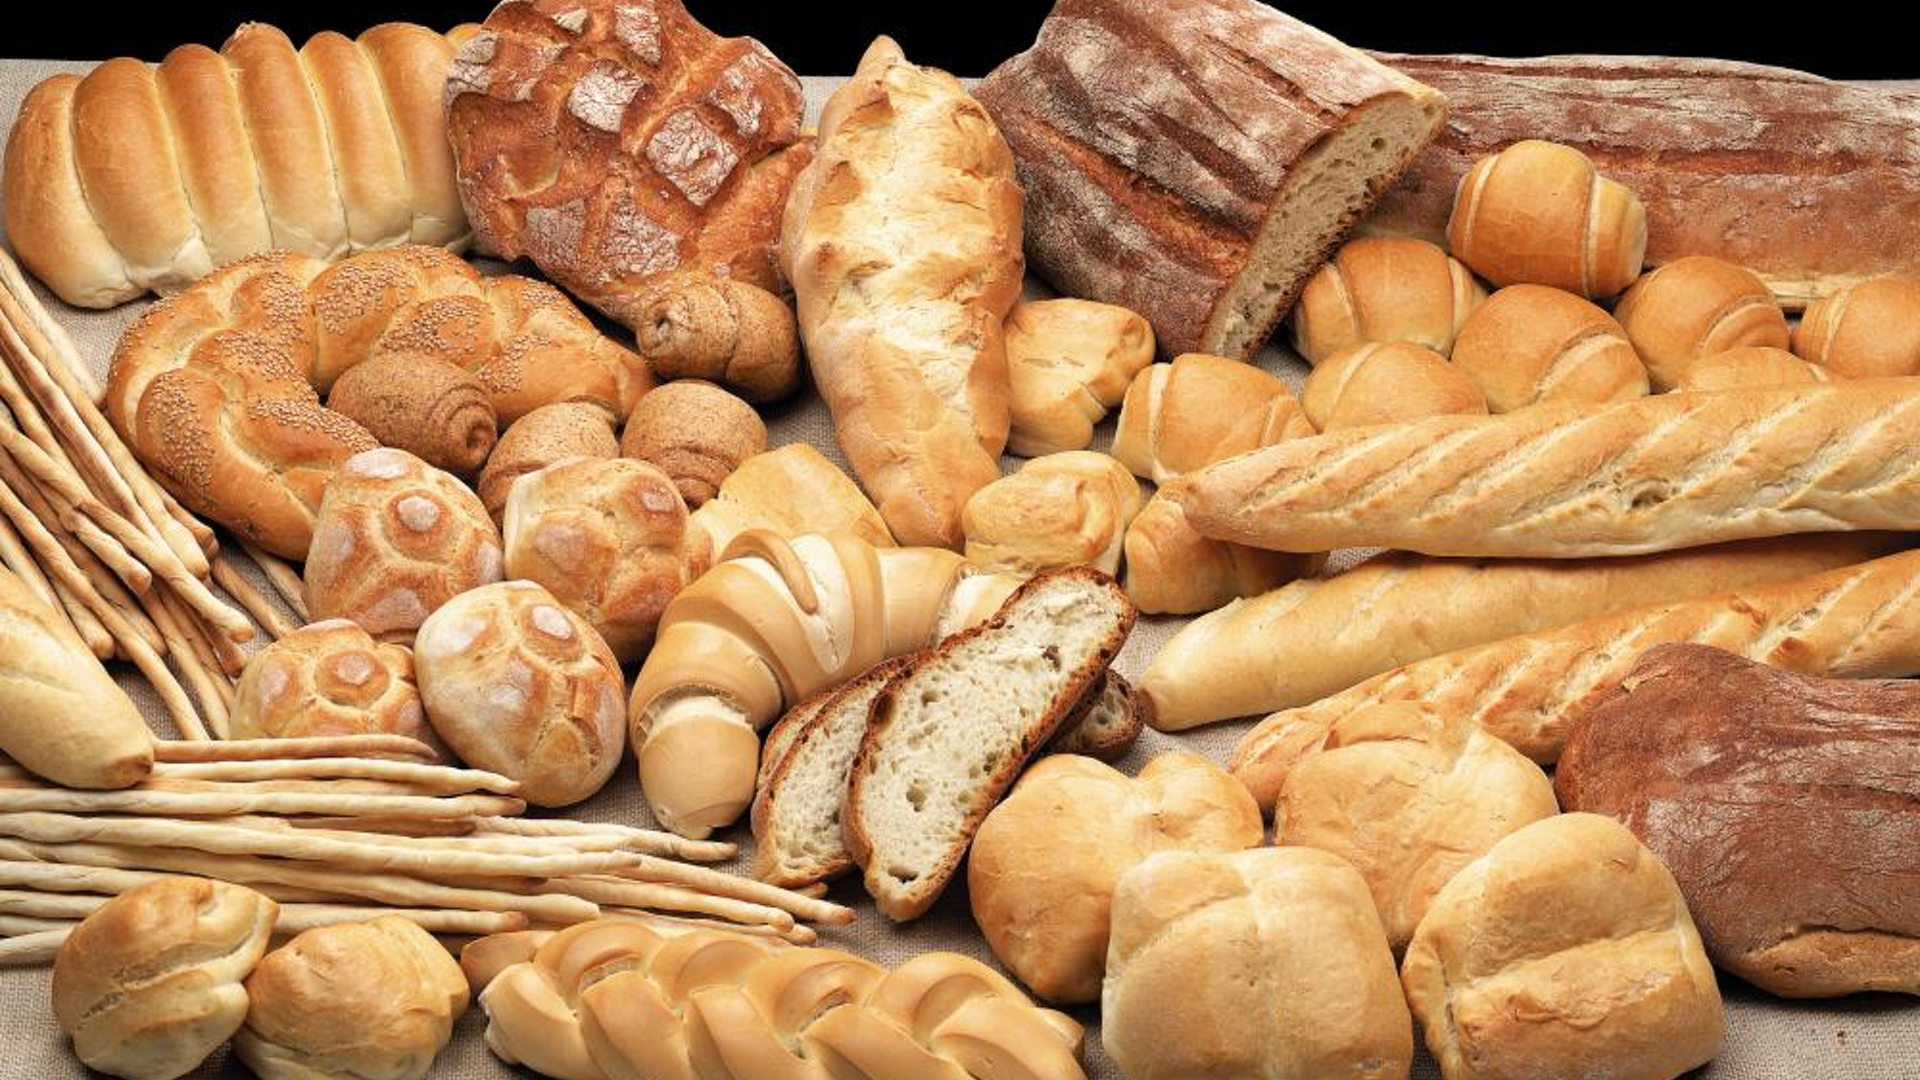 Cut back on carbs - Reducing your carbohydrate intake will help keep your appetite down. Studies have shown that people on low-carb diets lose 2-3 times more weight than those on low-fat diets. Refined carbs (such as carbs such as, white rice, white potatoes, and bread) are the ones you should pay most attention to. Avoiding these should be sufficient, and most grains are fine to eat in moderations.